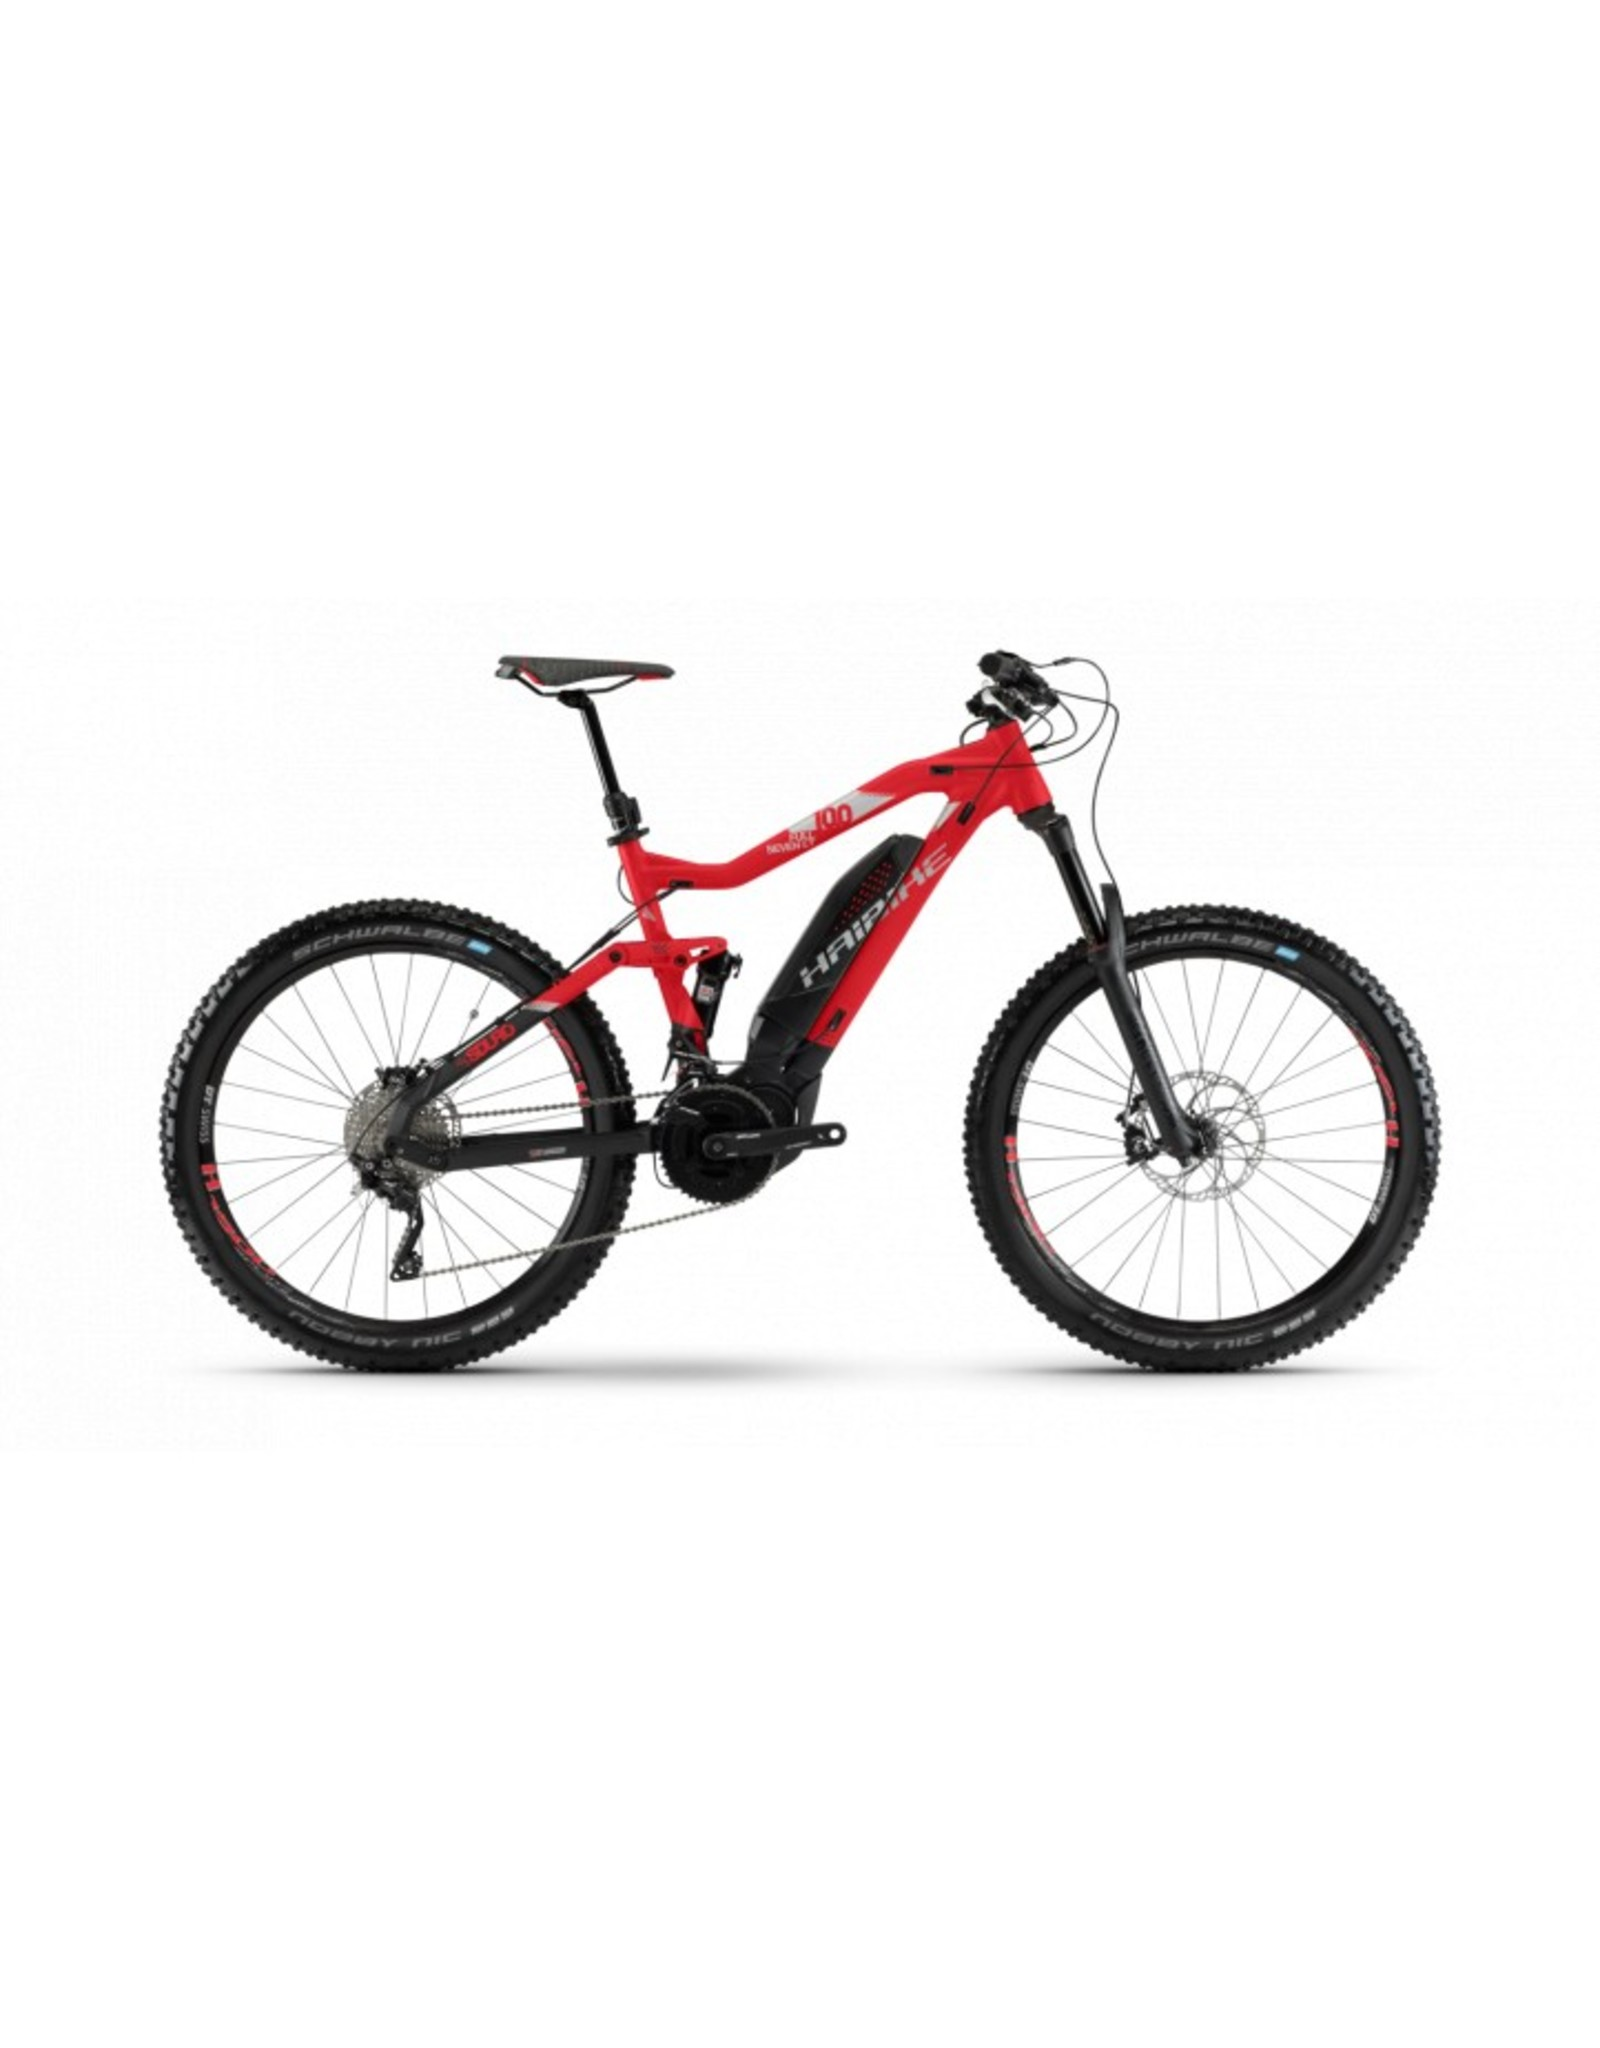 Haibike SD FULLSEVEN LT 10 40 RED